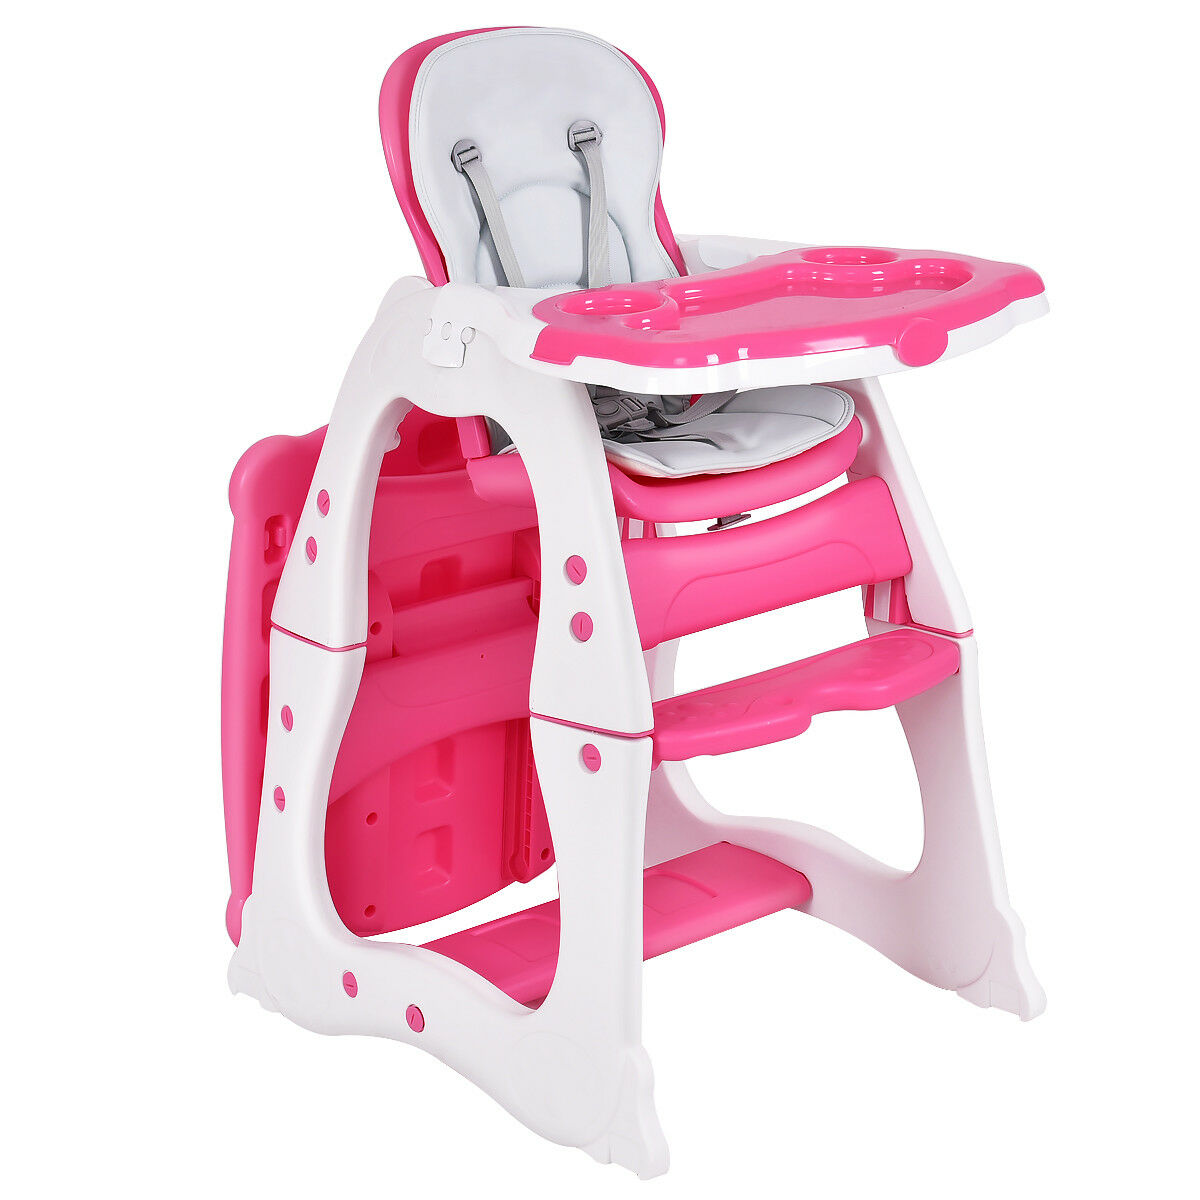 3 in 1 Baby High Chair Convertible Play Table Seat Booster Toddler Feeding Tray - image 10 de 10